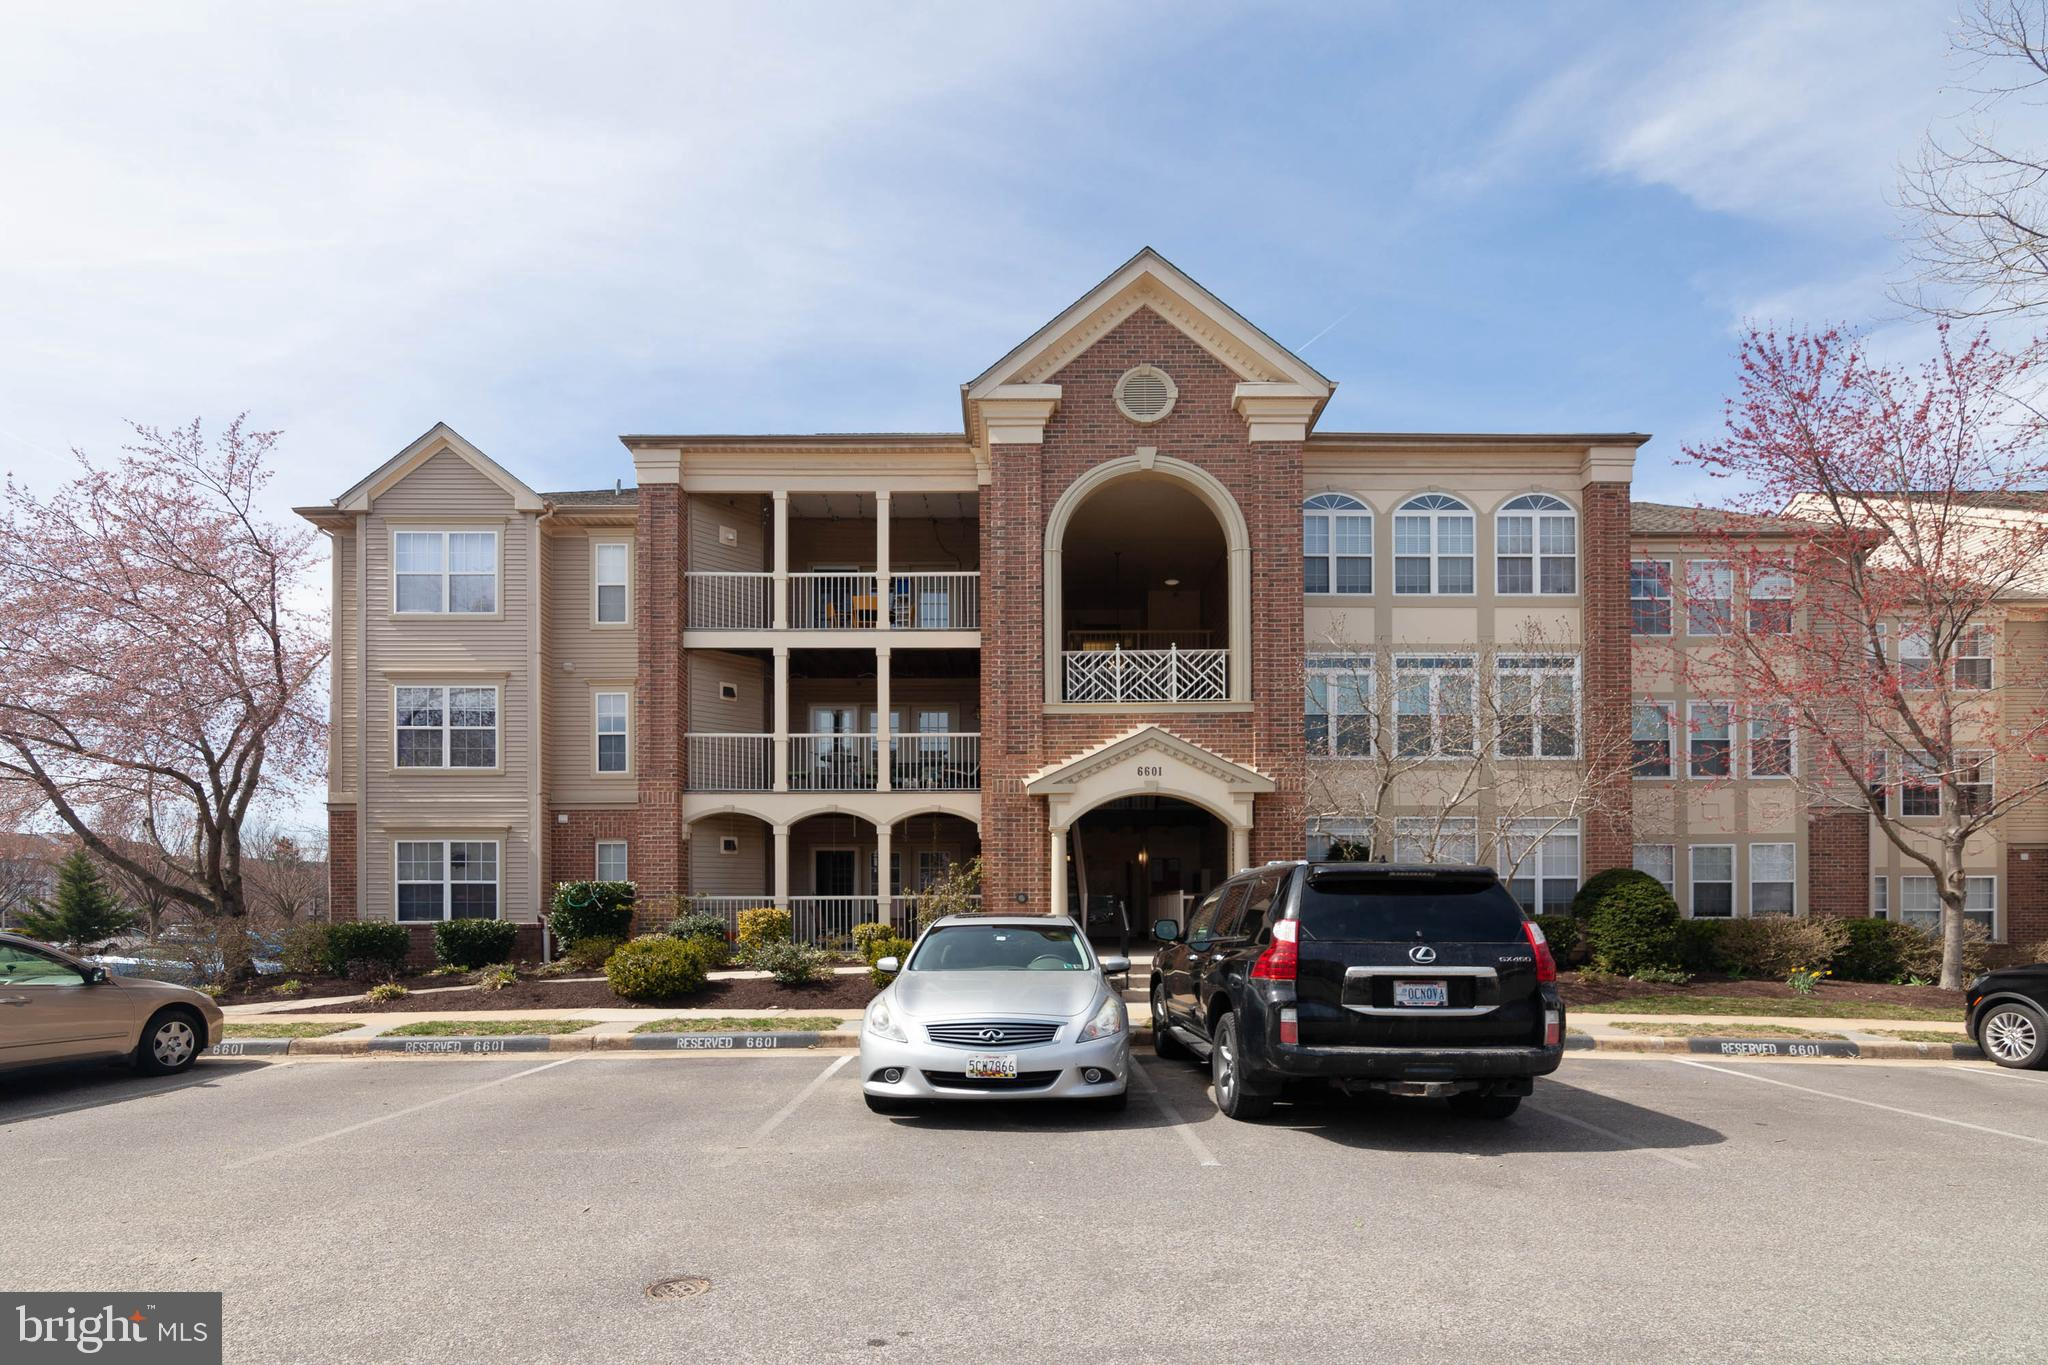 Highly desirable, rarely available top-floor condo.  The vaulted ceilings, open floor plan, dual master suites (2 bedrooms, 2 full bathrooms), and bonus sun room highlight an abundance of natural light.  Pristine condition.  New HVAC, water heater, and full-sized stackable washer and dryer enable immediate move-in.  The community features two pools, jogging trails, tennis courts, volleyball court, tot lots, club house, ponds, and basketball courts.  Wegmans shopping center right around the corner. Located close proximity to two metro stations, Springfield/Franconia and Van Dorn. Easy access to many commuter routes.  Gorgeous home...this is a must-see!--- **OFFER DEADLINE, MONDAY 4/1 NOON**